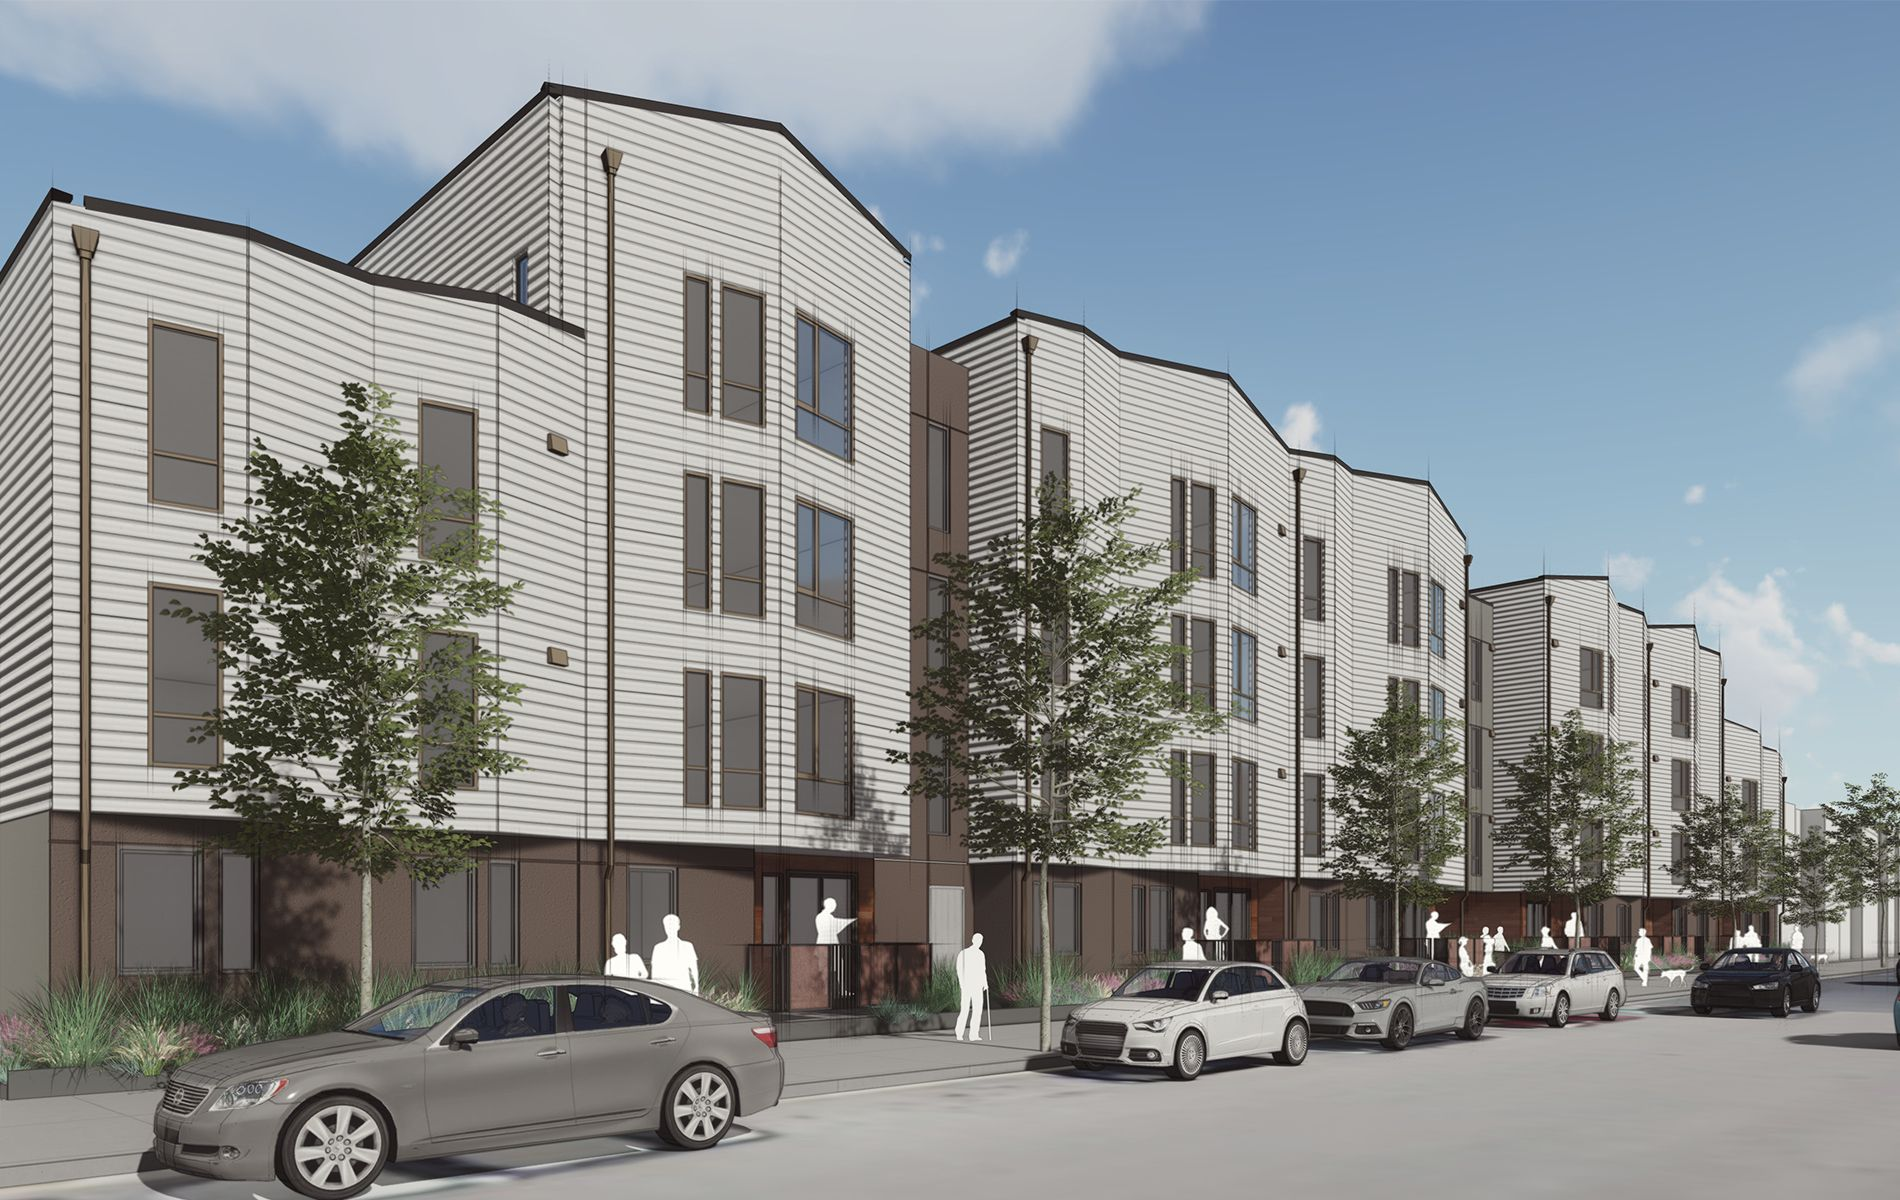 Bar Architects Our Work Sfusd Educator Housing Affordable Housing Architect Multifamily Housing